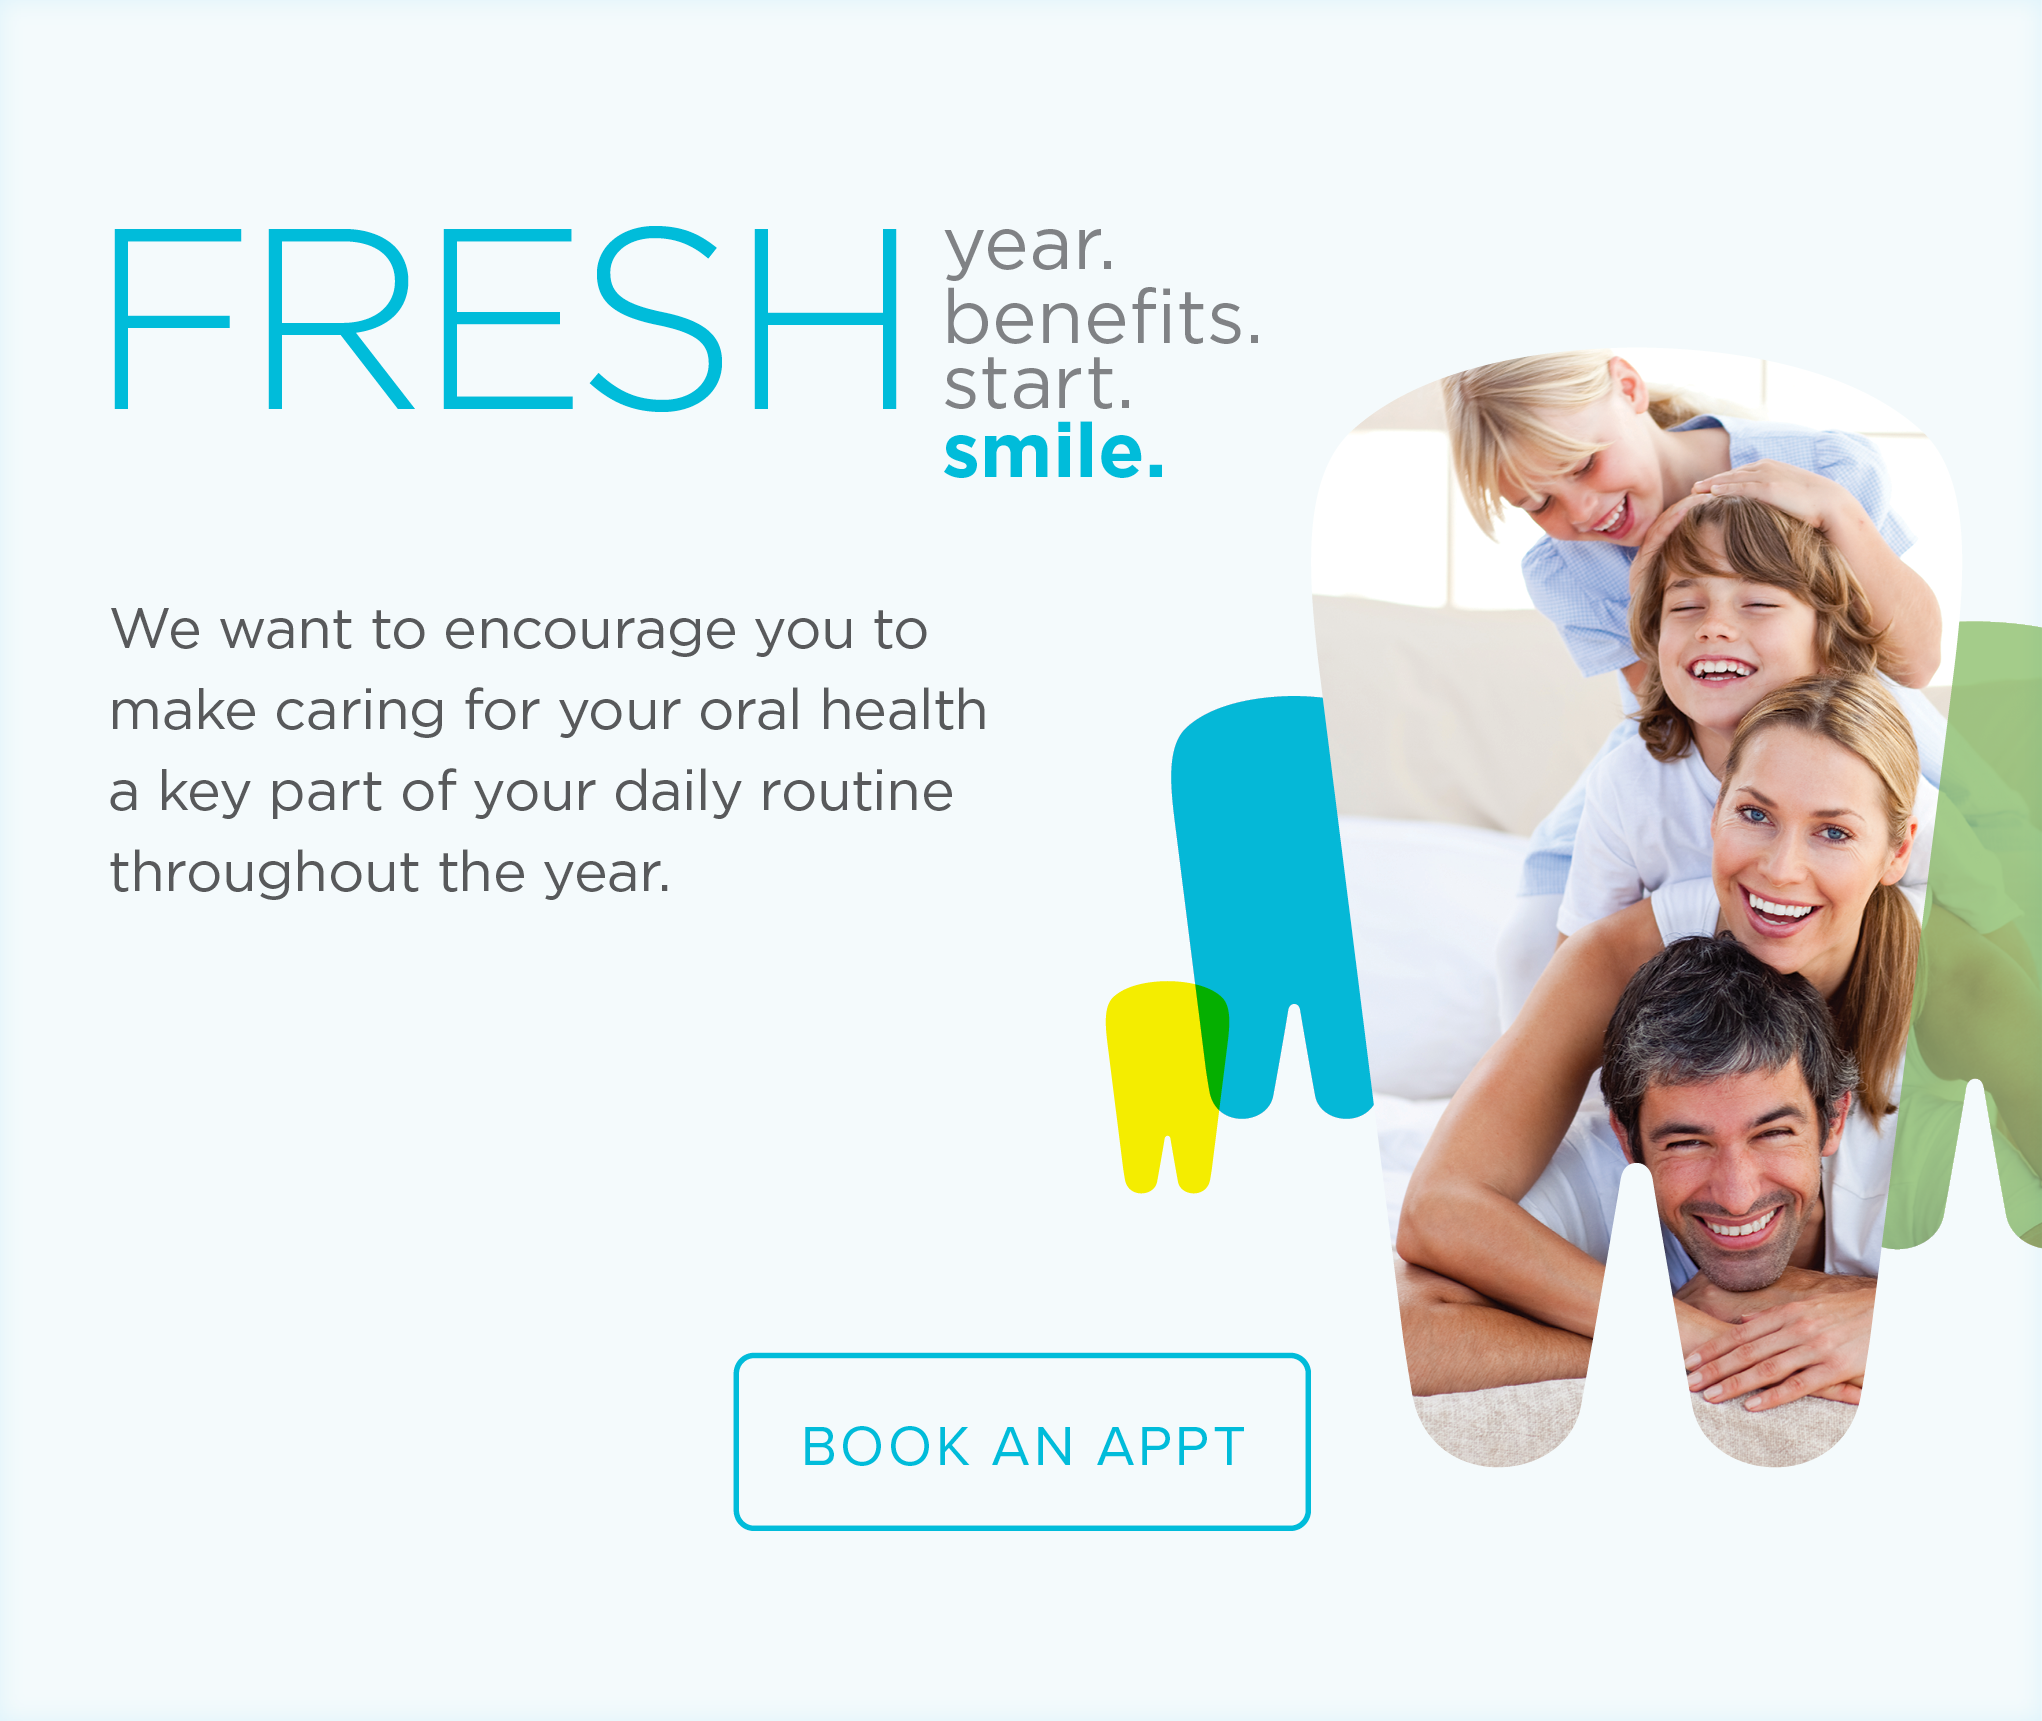 Gateway Dental Group and Orthodontics - Make the Most of Your Benefits